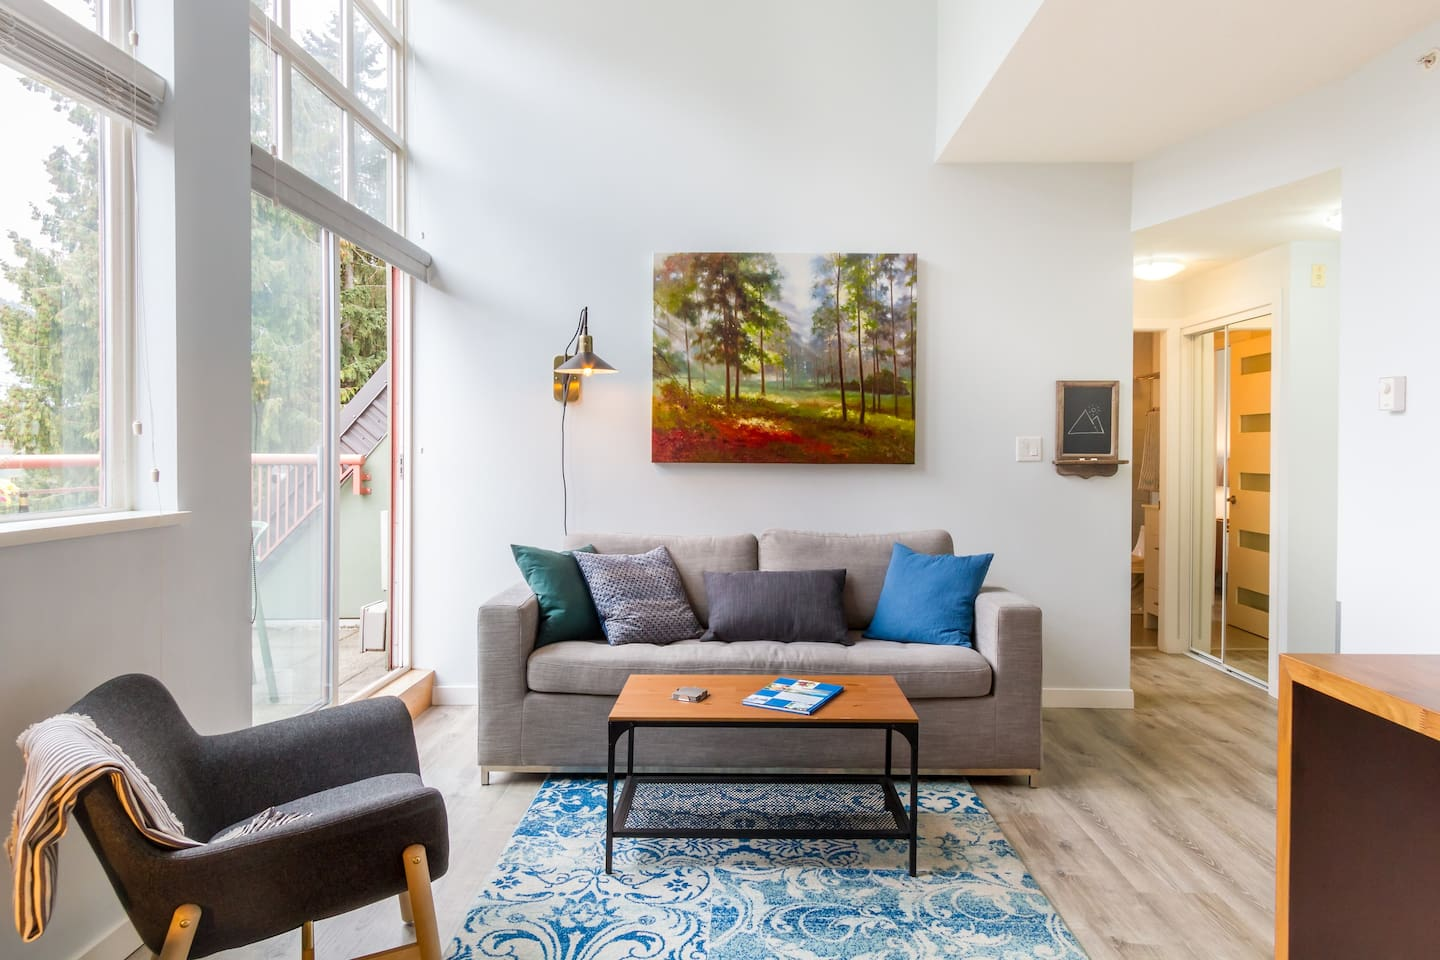 Victoria and Christian's place has everything you would need for a trip to Whistler. A great location, stylish and well equipped space, and even a mountain view. They were friendly and always quick to communicate.We thoroughly enjoyed our experience!